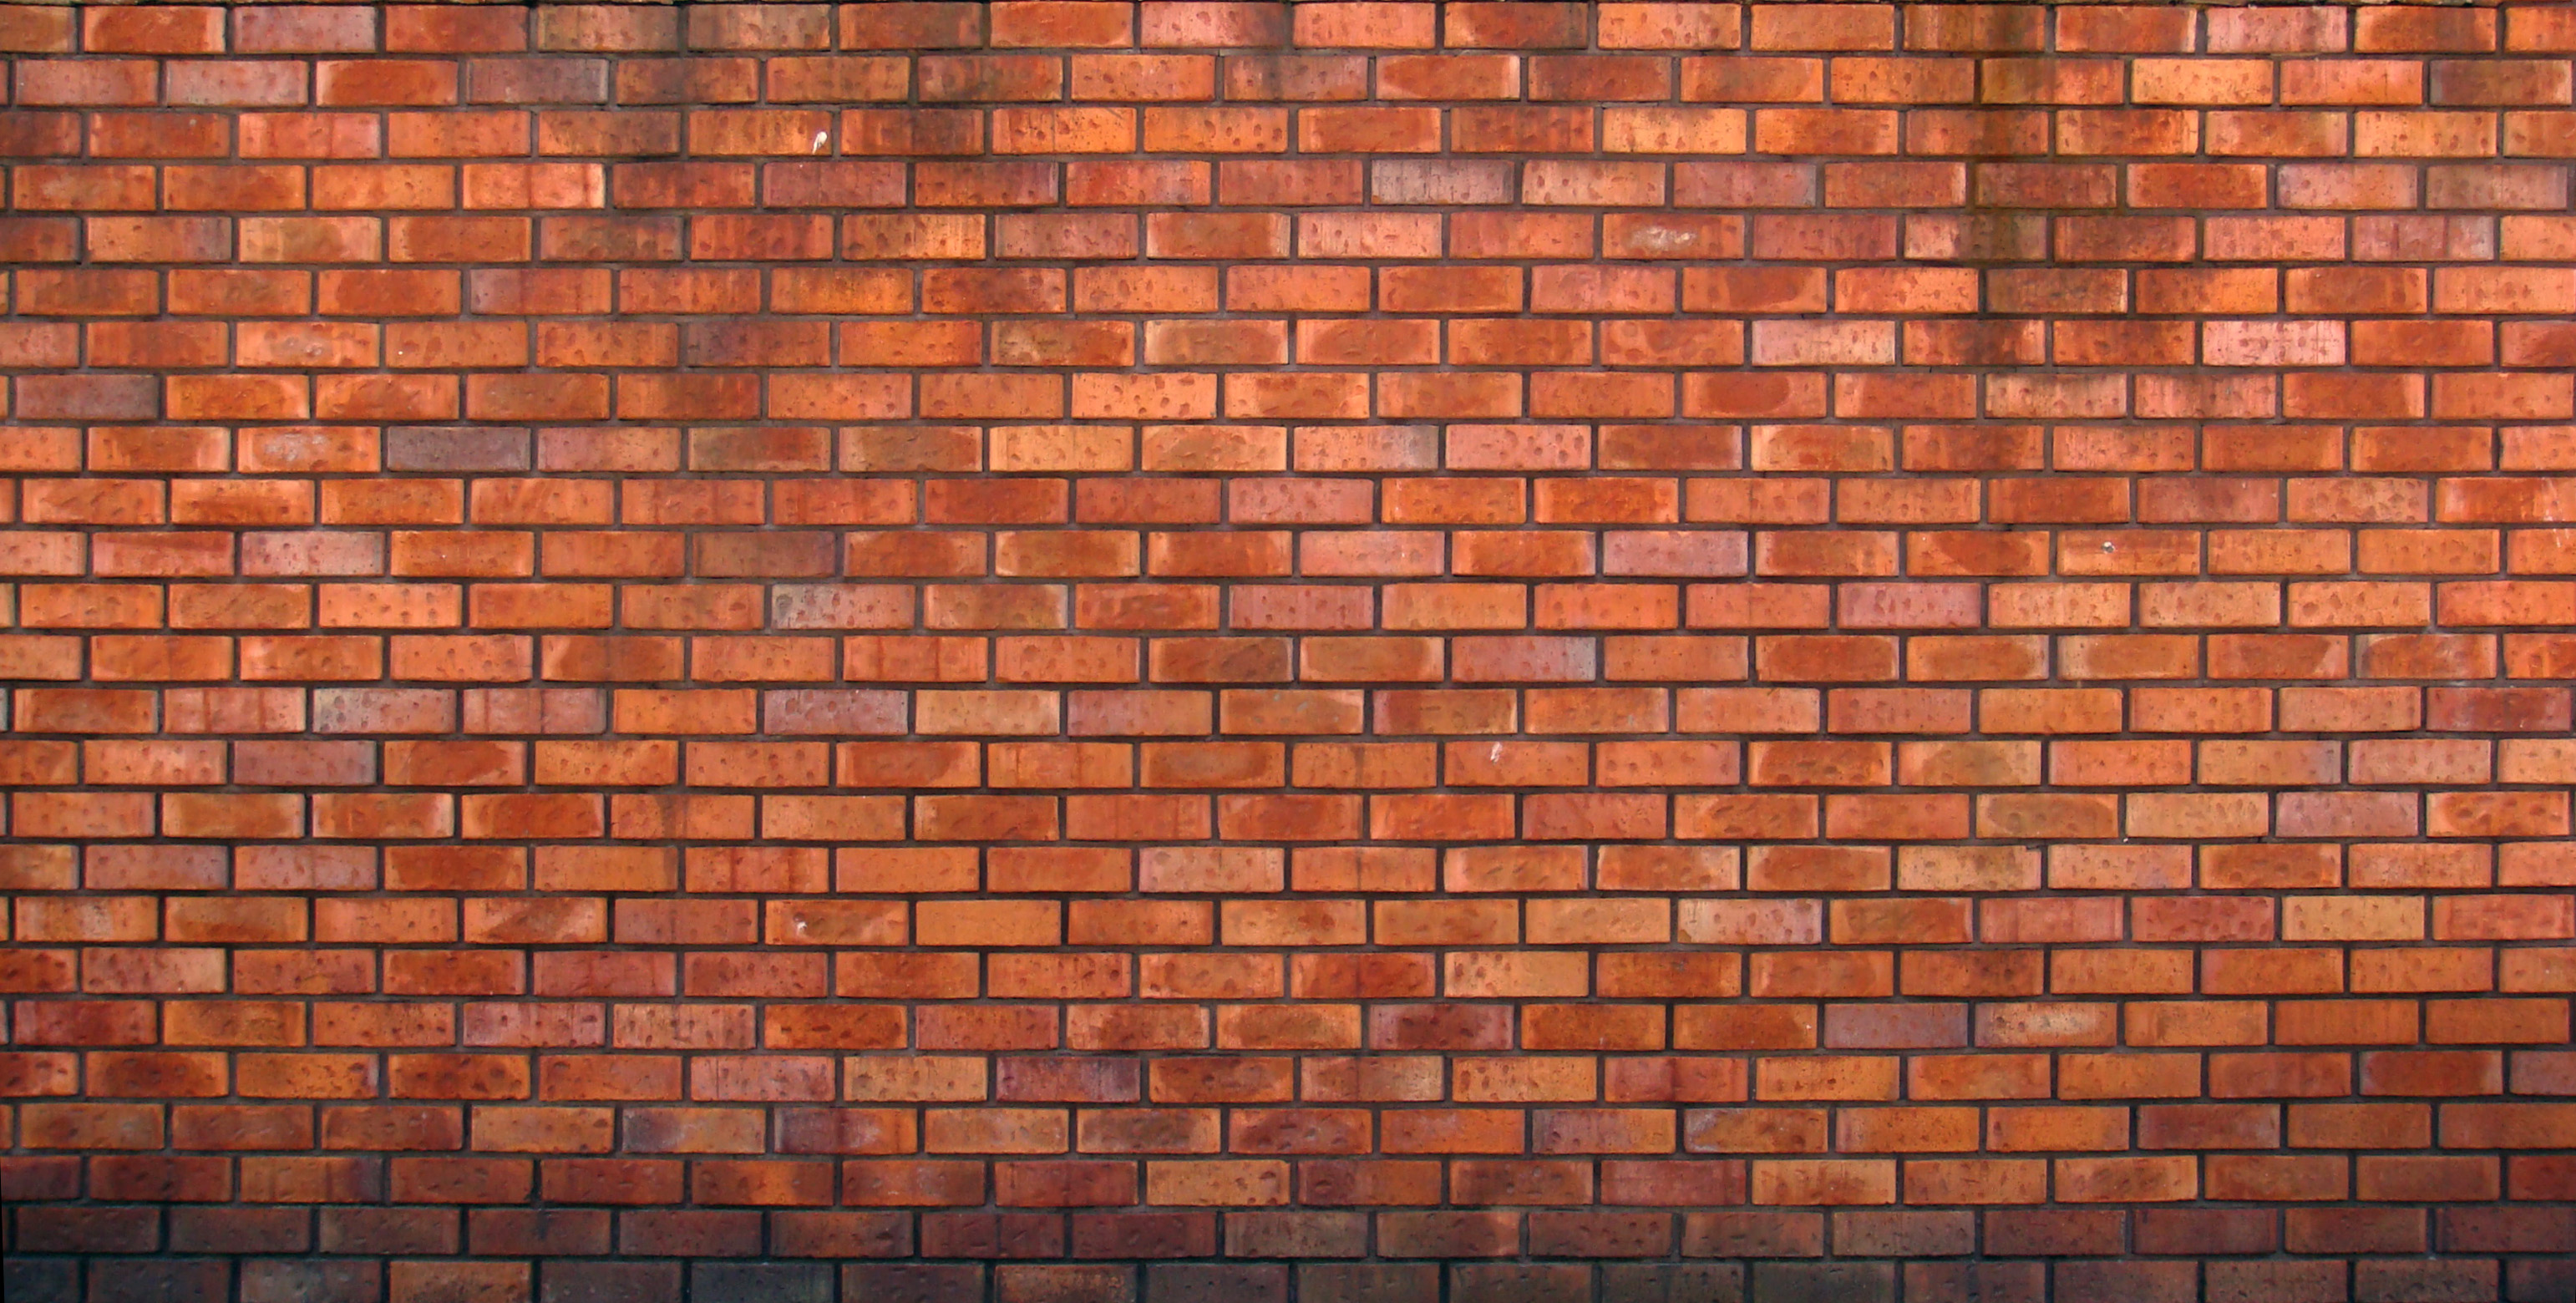 Red brick background clipart png free Brick Wall Hd Wallpaper - Brick Wall Background Clipart (#966019 ... png free